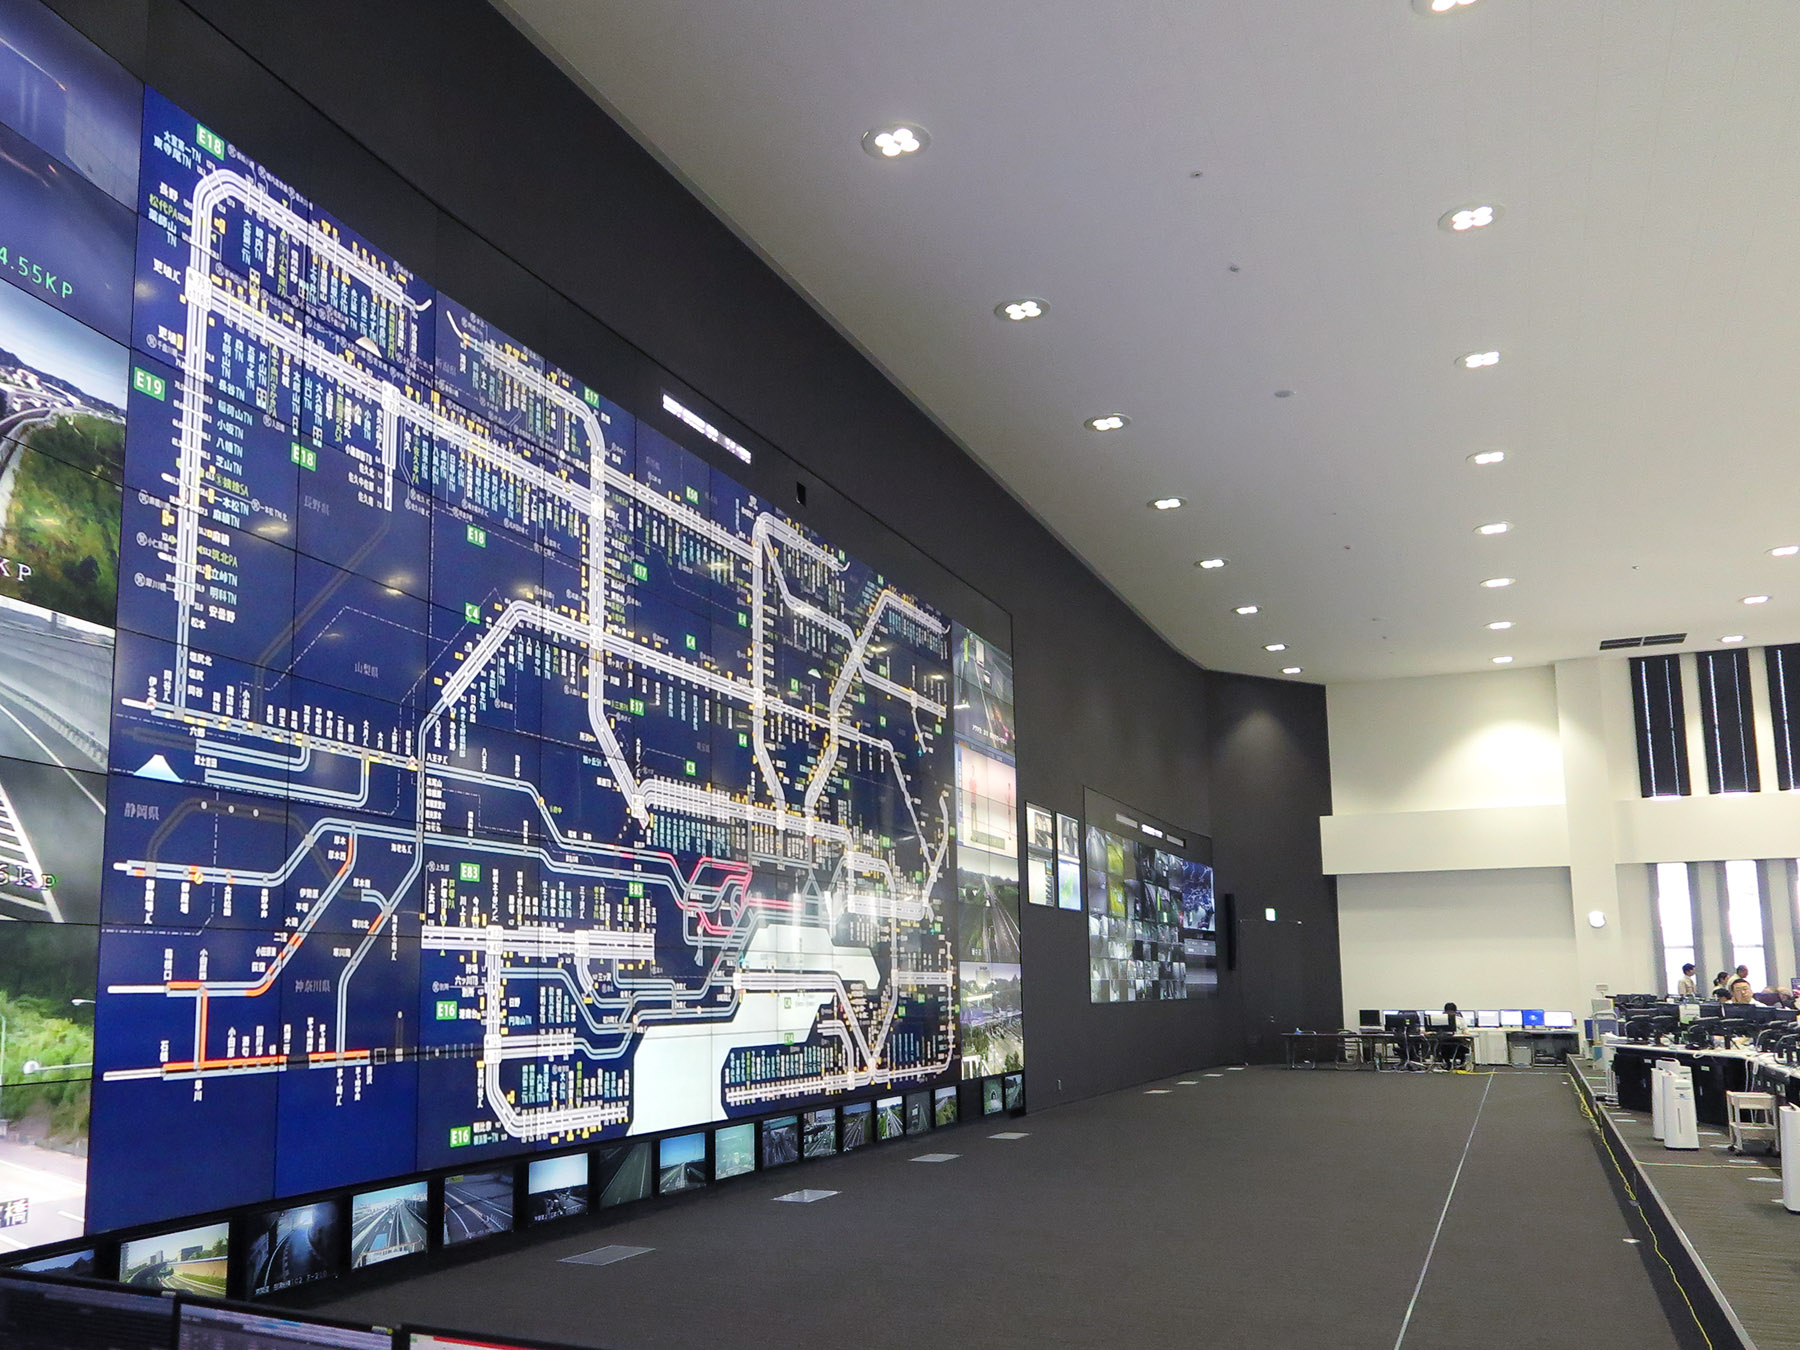 The traffic control room's screen